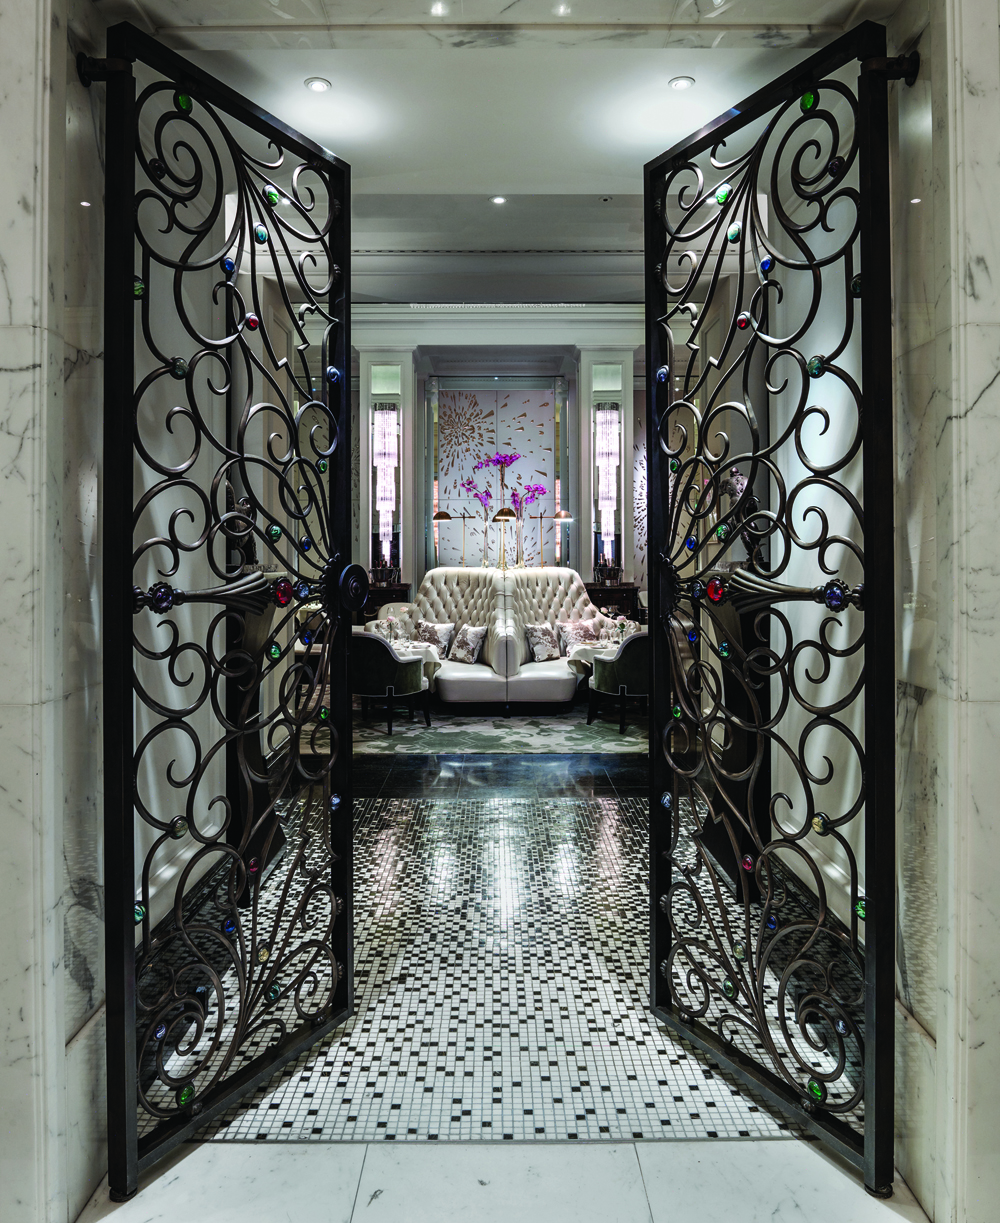 Palm Court at The Langham, London